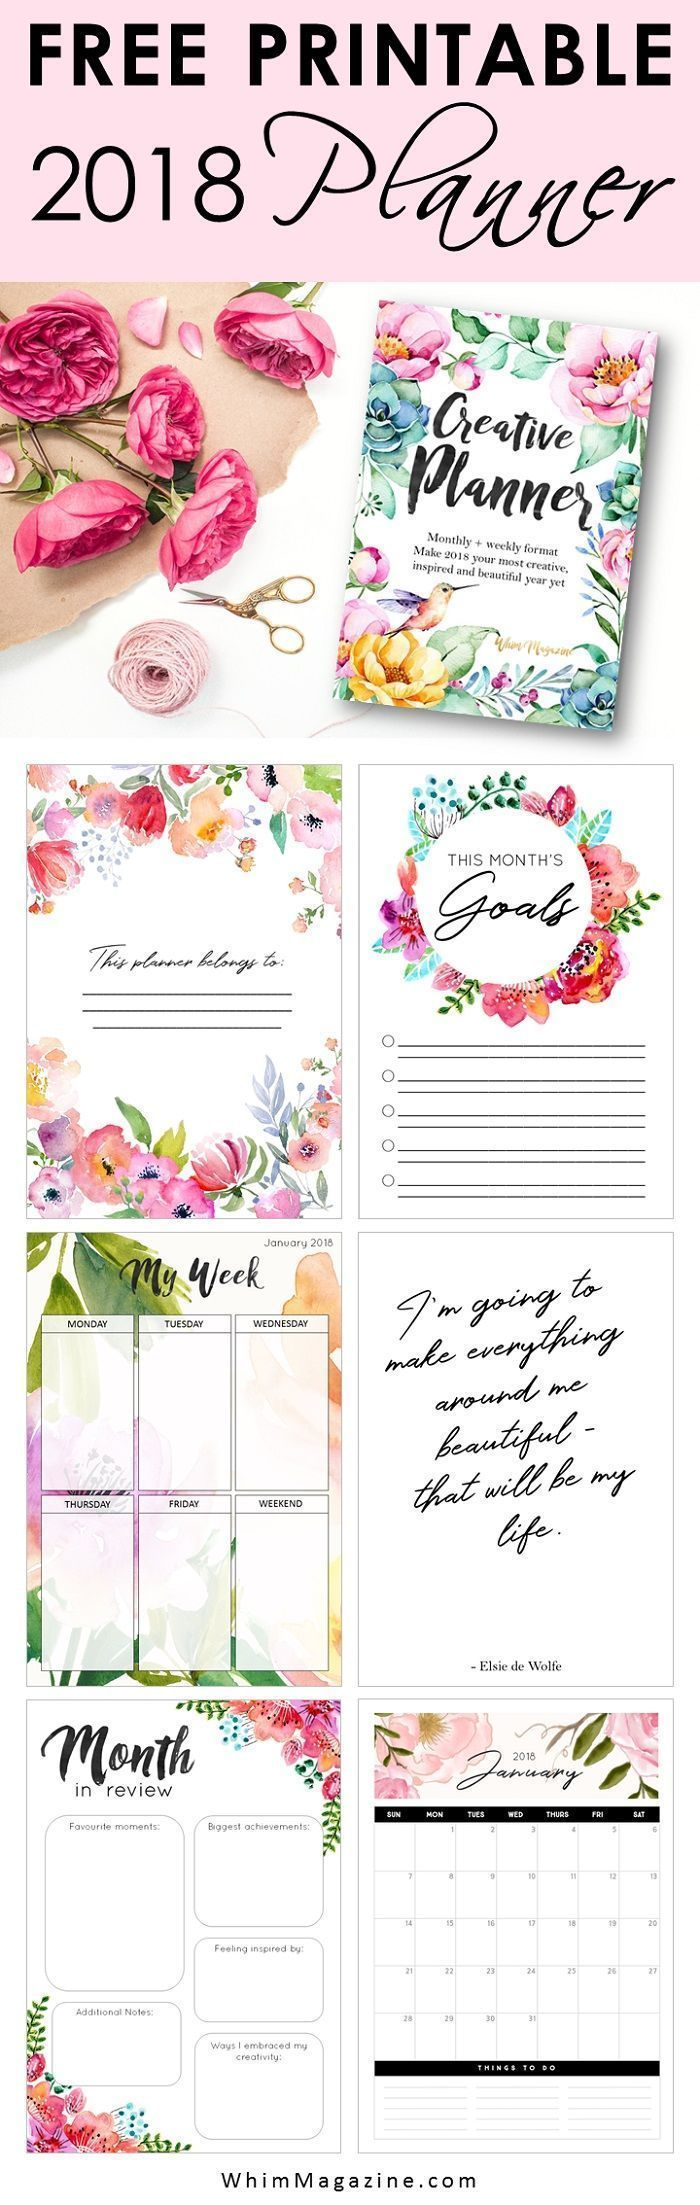 Get your FREE 2018 planner now! Click to download your free printable planner from Whim Magazine - instant download!